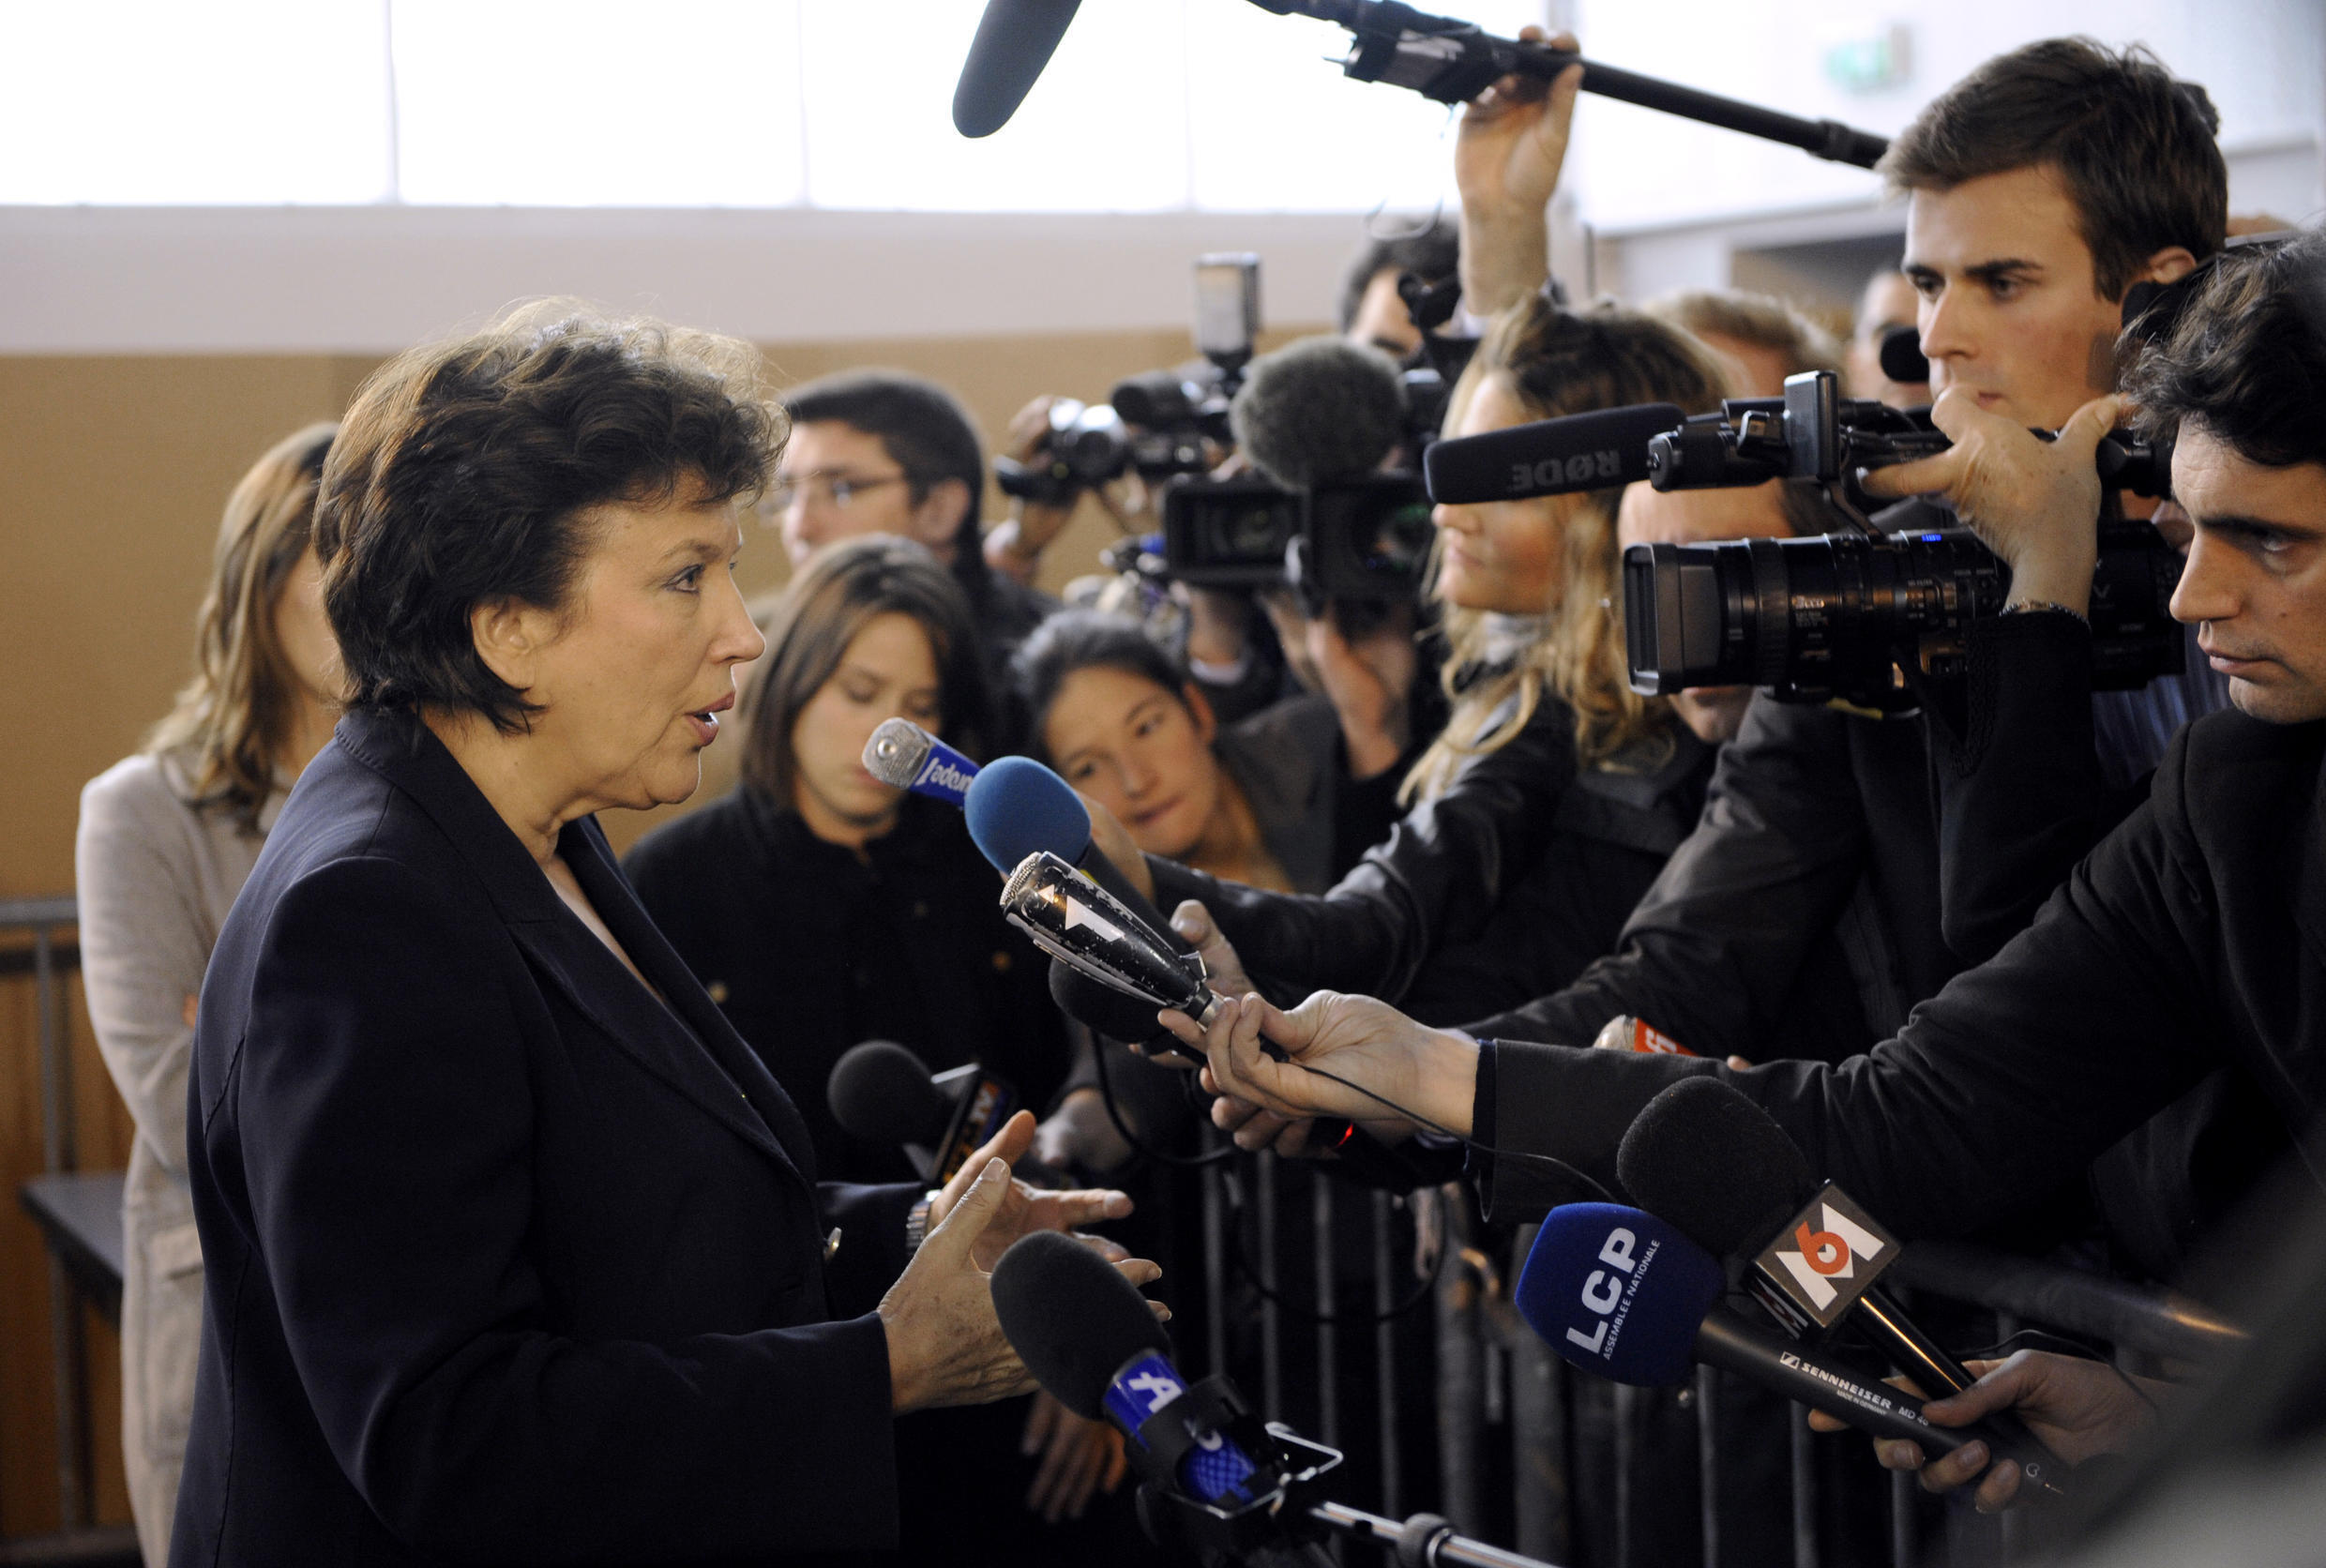 Former Health Minister Roselyne Bachelot talks to the press after being vaccinated for the H1N1 influenza on November 12, 2009.